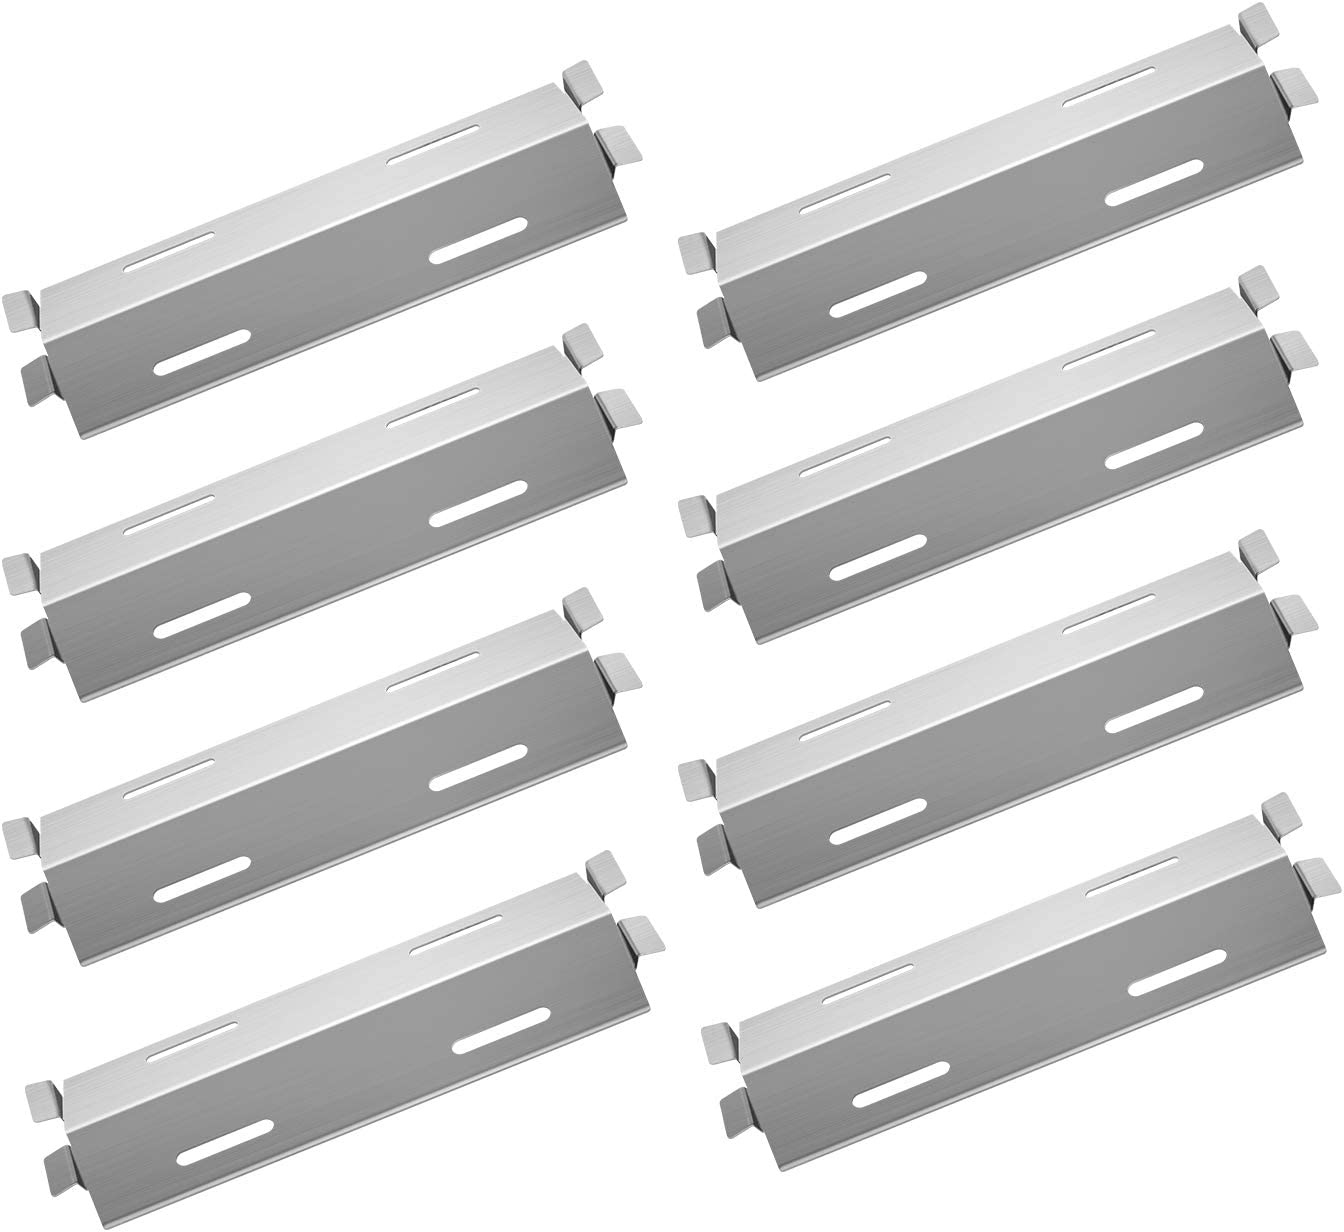 Damile Stainless Steel Grill Heat Plates Shield Cove 5 Outstanding ☆ very popular Burner